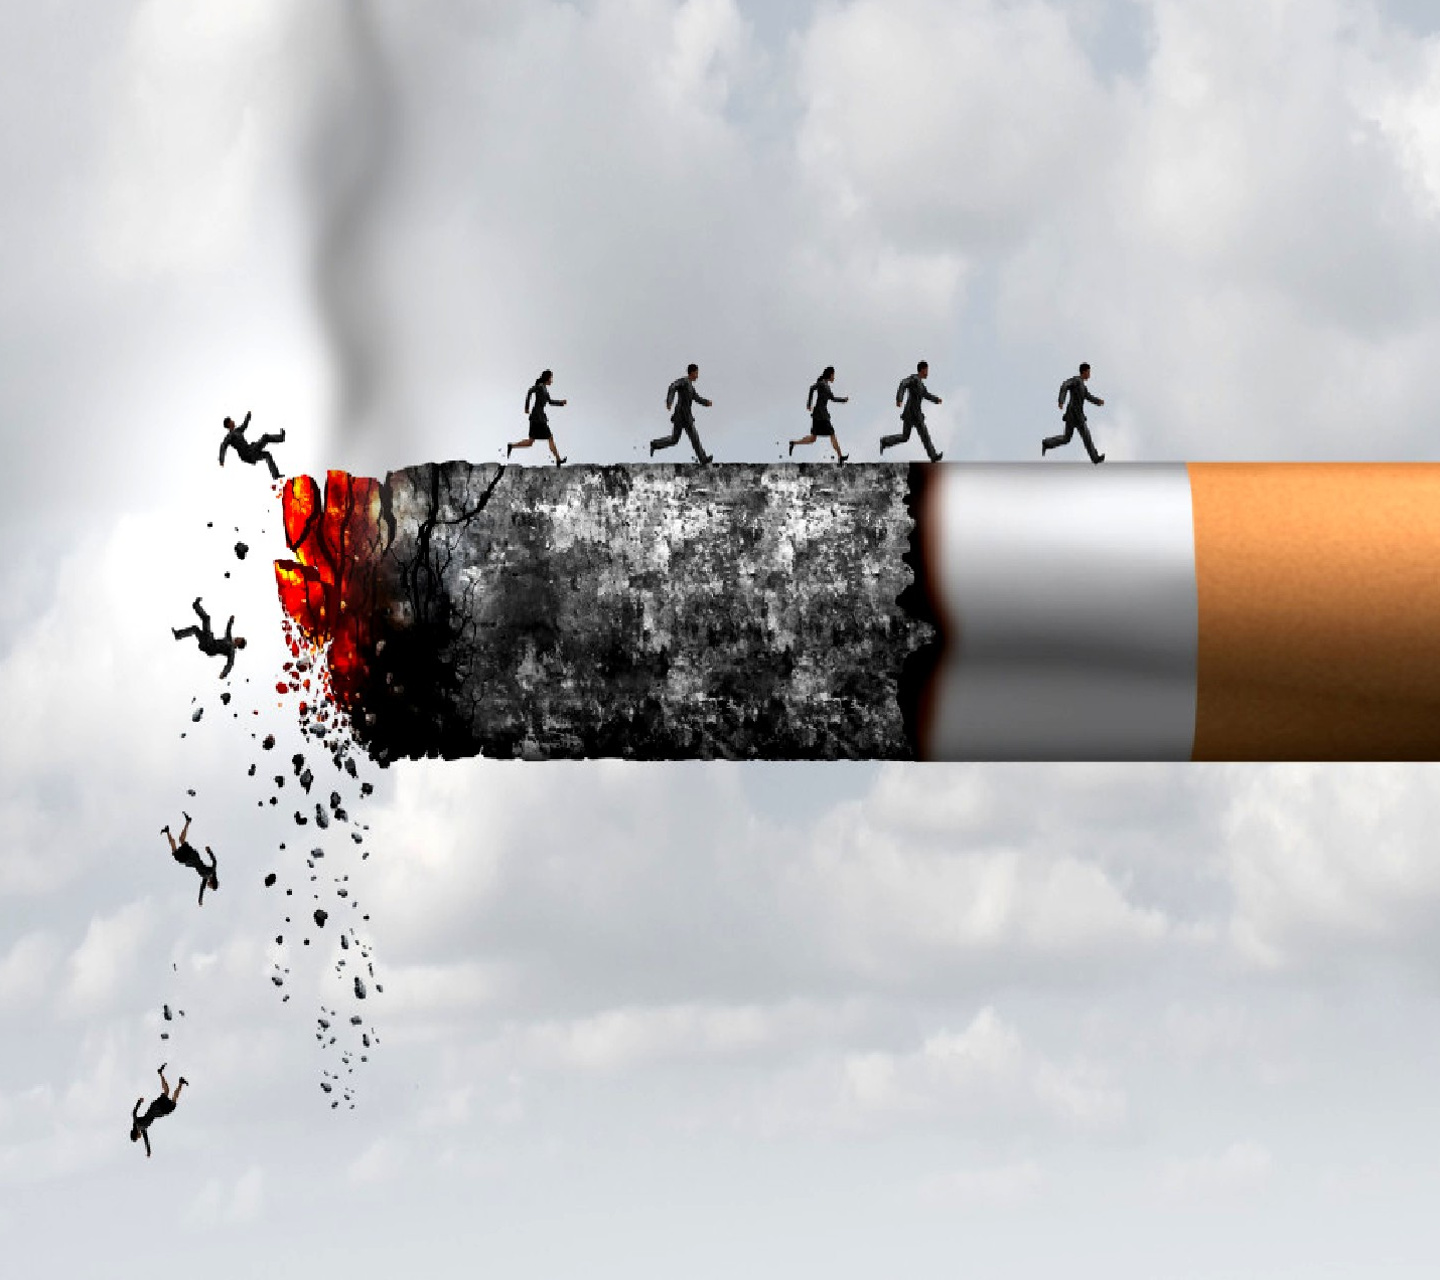 Smoking Kills Burning Cigarette Wallpaper